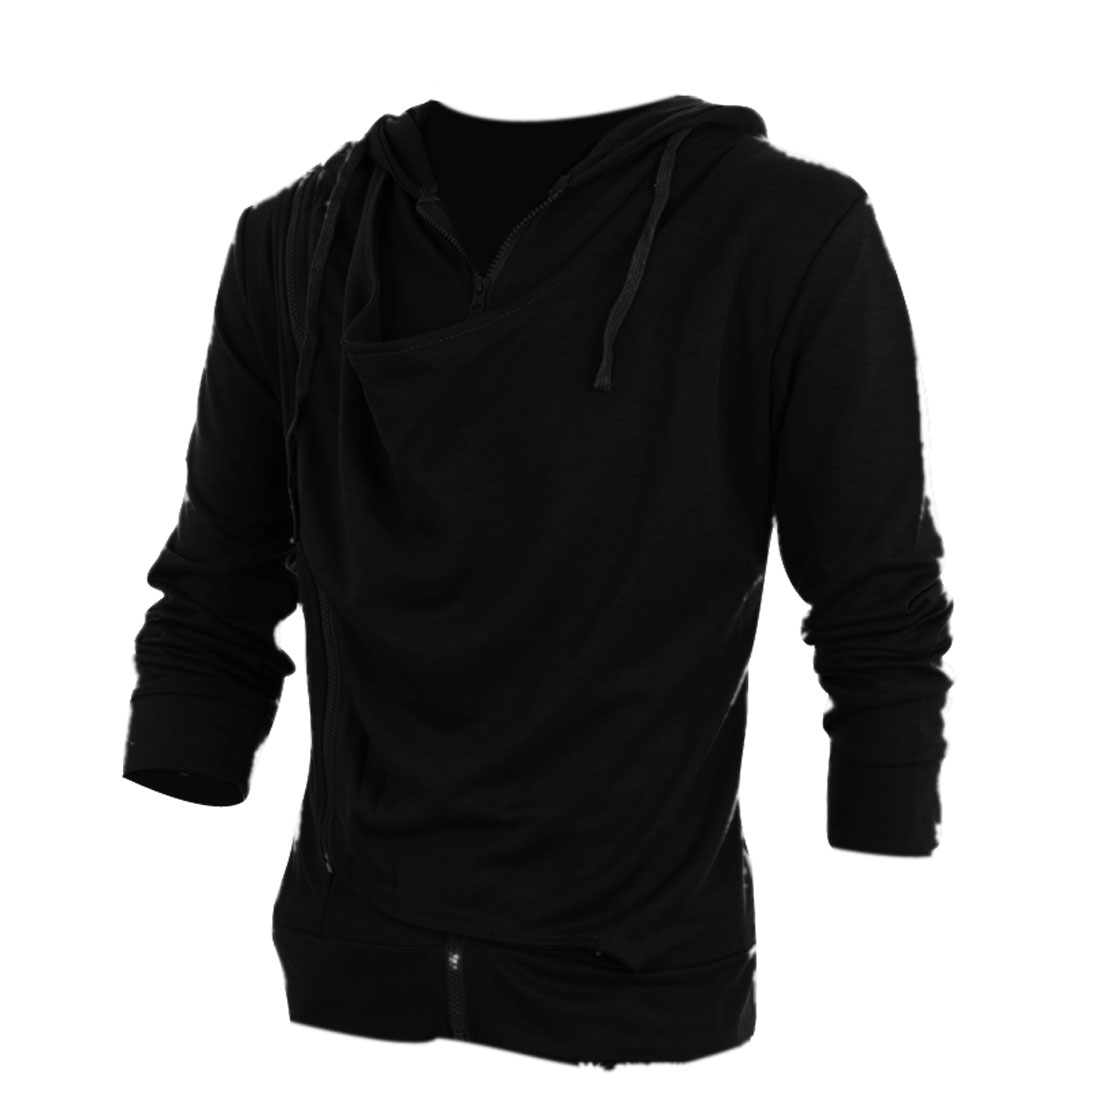 Men Cowl Neck Slim Fit Long Sleeve Style Sexy Top Stylish Hoodies Black M